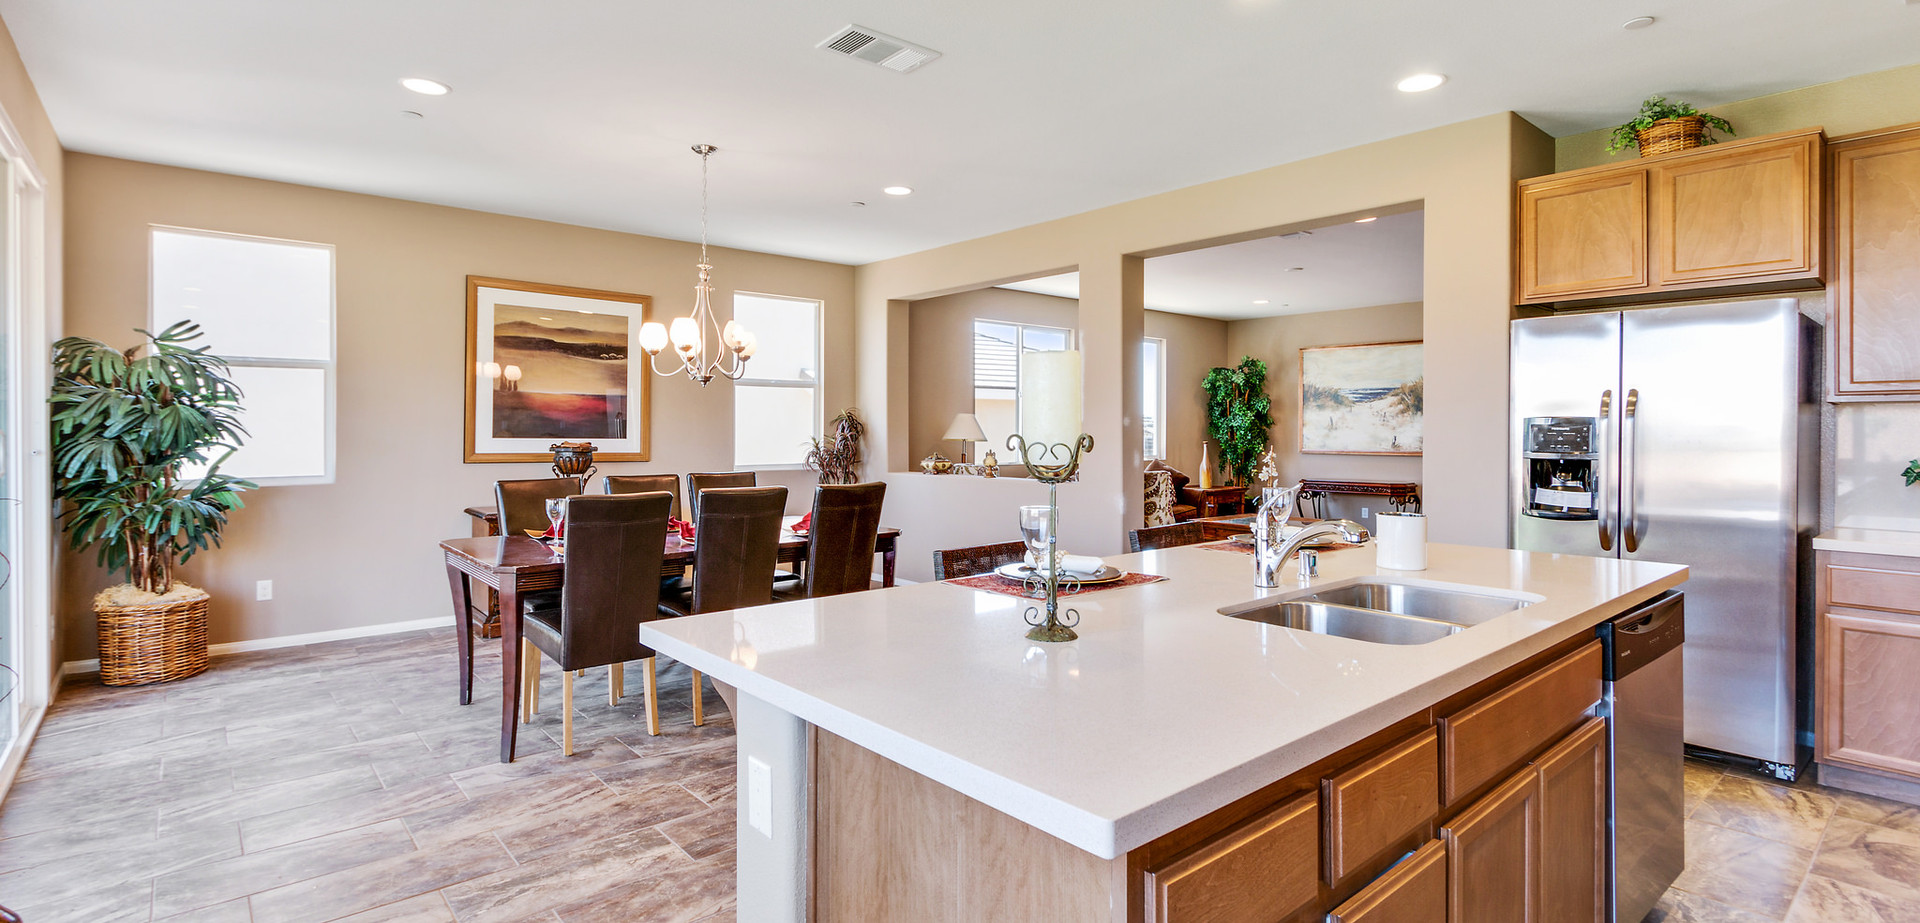 Oak Hills 1 - Plan 1 - Kitchen.jpg